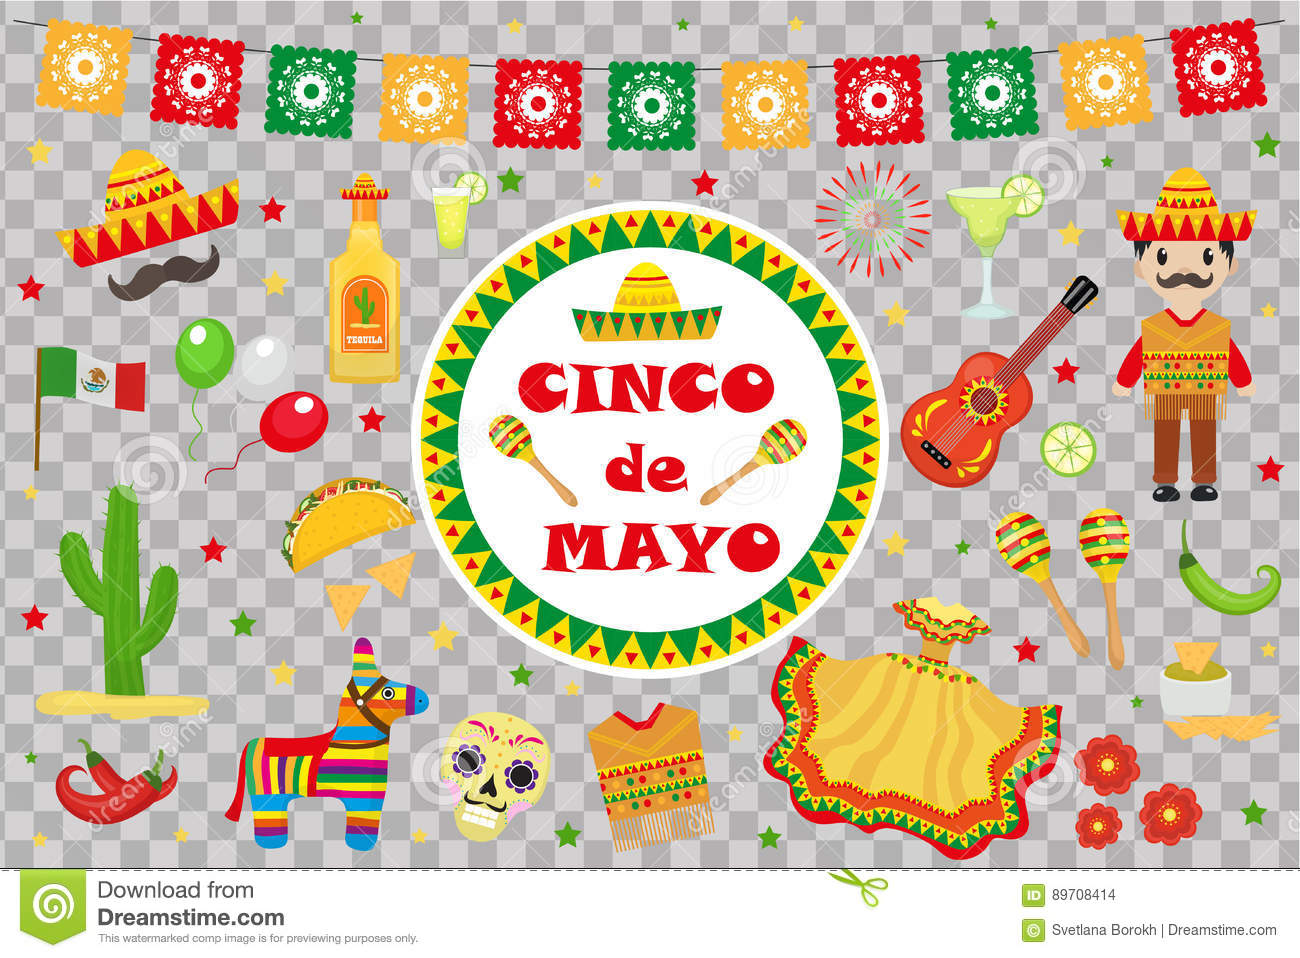 cinco cartoons illustrations vector stock images 4613 pictures to download from. Black Bedroom Furniture Sets. Home Design Ideas